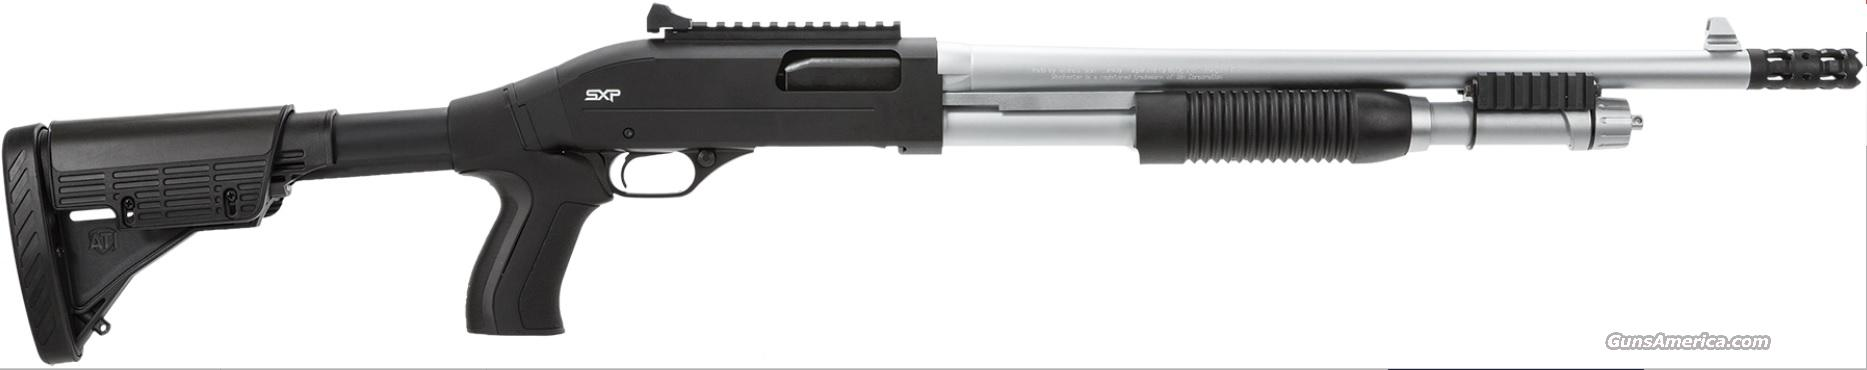 "WINCHESTER SUPER-X PUMP Marine Defender 12ga 18"" 3"" 5+1 Blk PG Stk Chrome  Guns > Shotguns > Winchester Shotguns - Modern > Pump Action > Hunting"